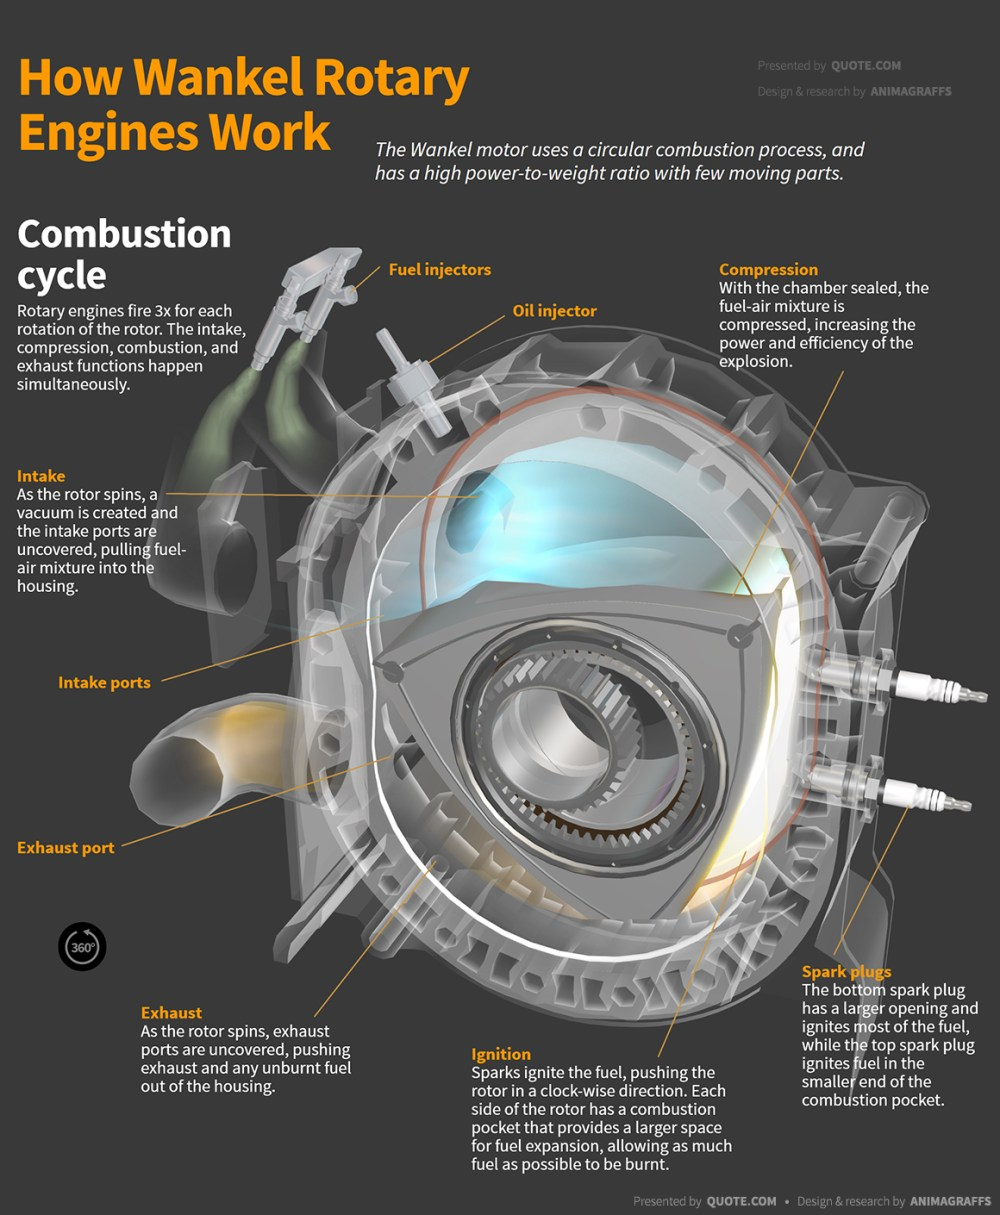 medium resolution of how wankel rotary engines work diagram